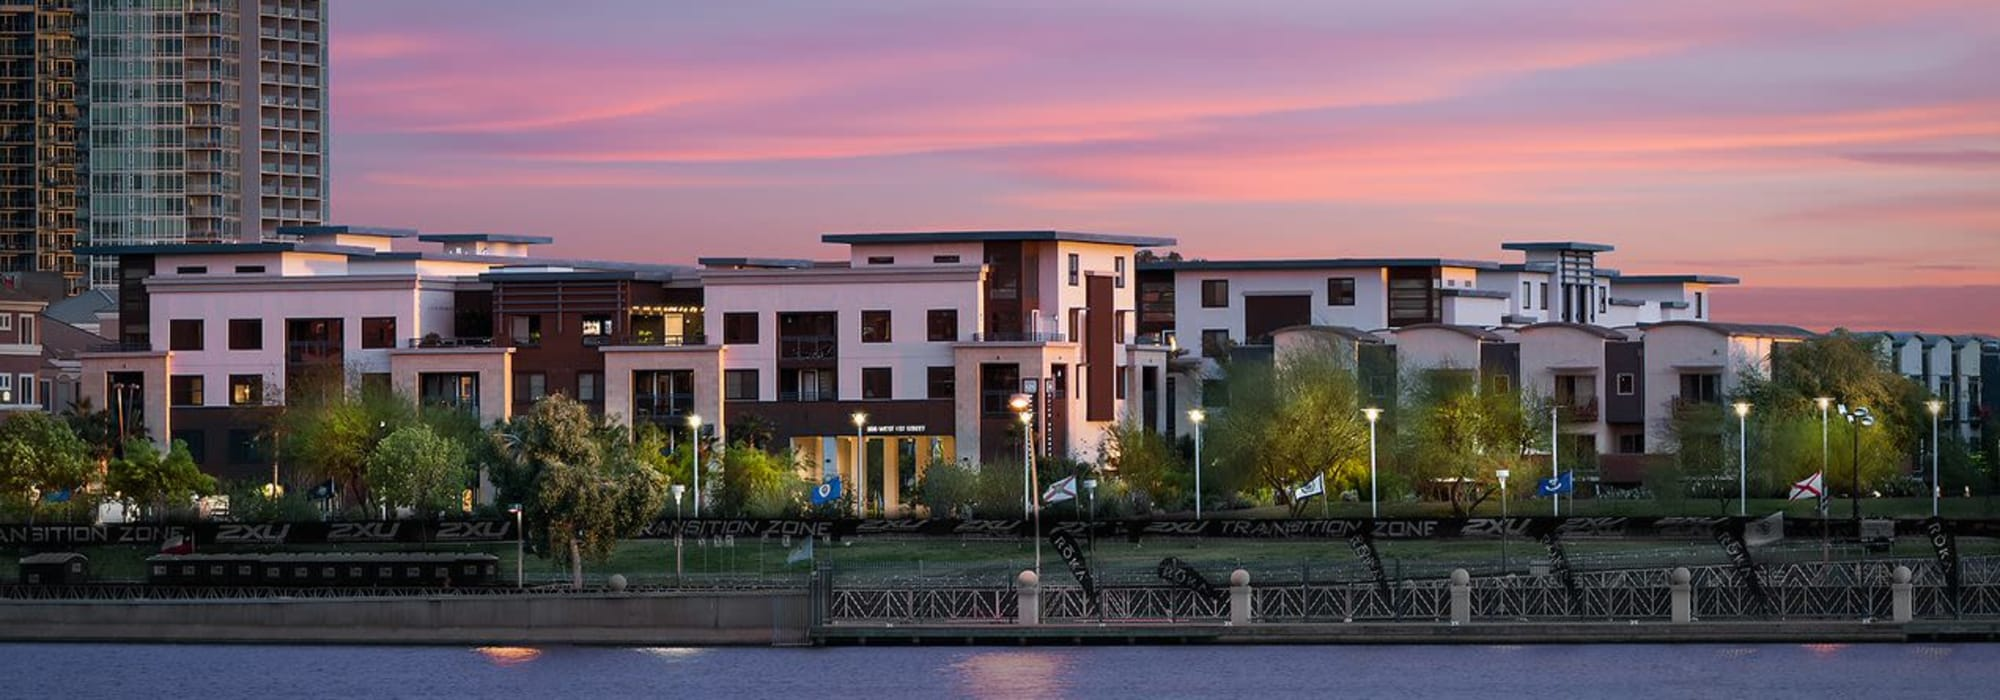 Apartment complex shot at dusk at Lakeside Drive Apartments in Tempe, Arizona